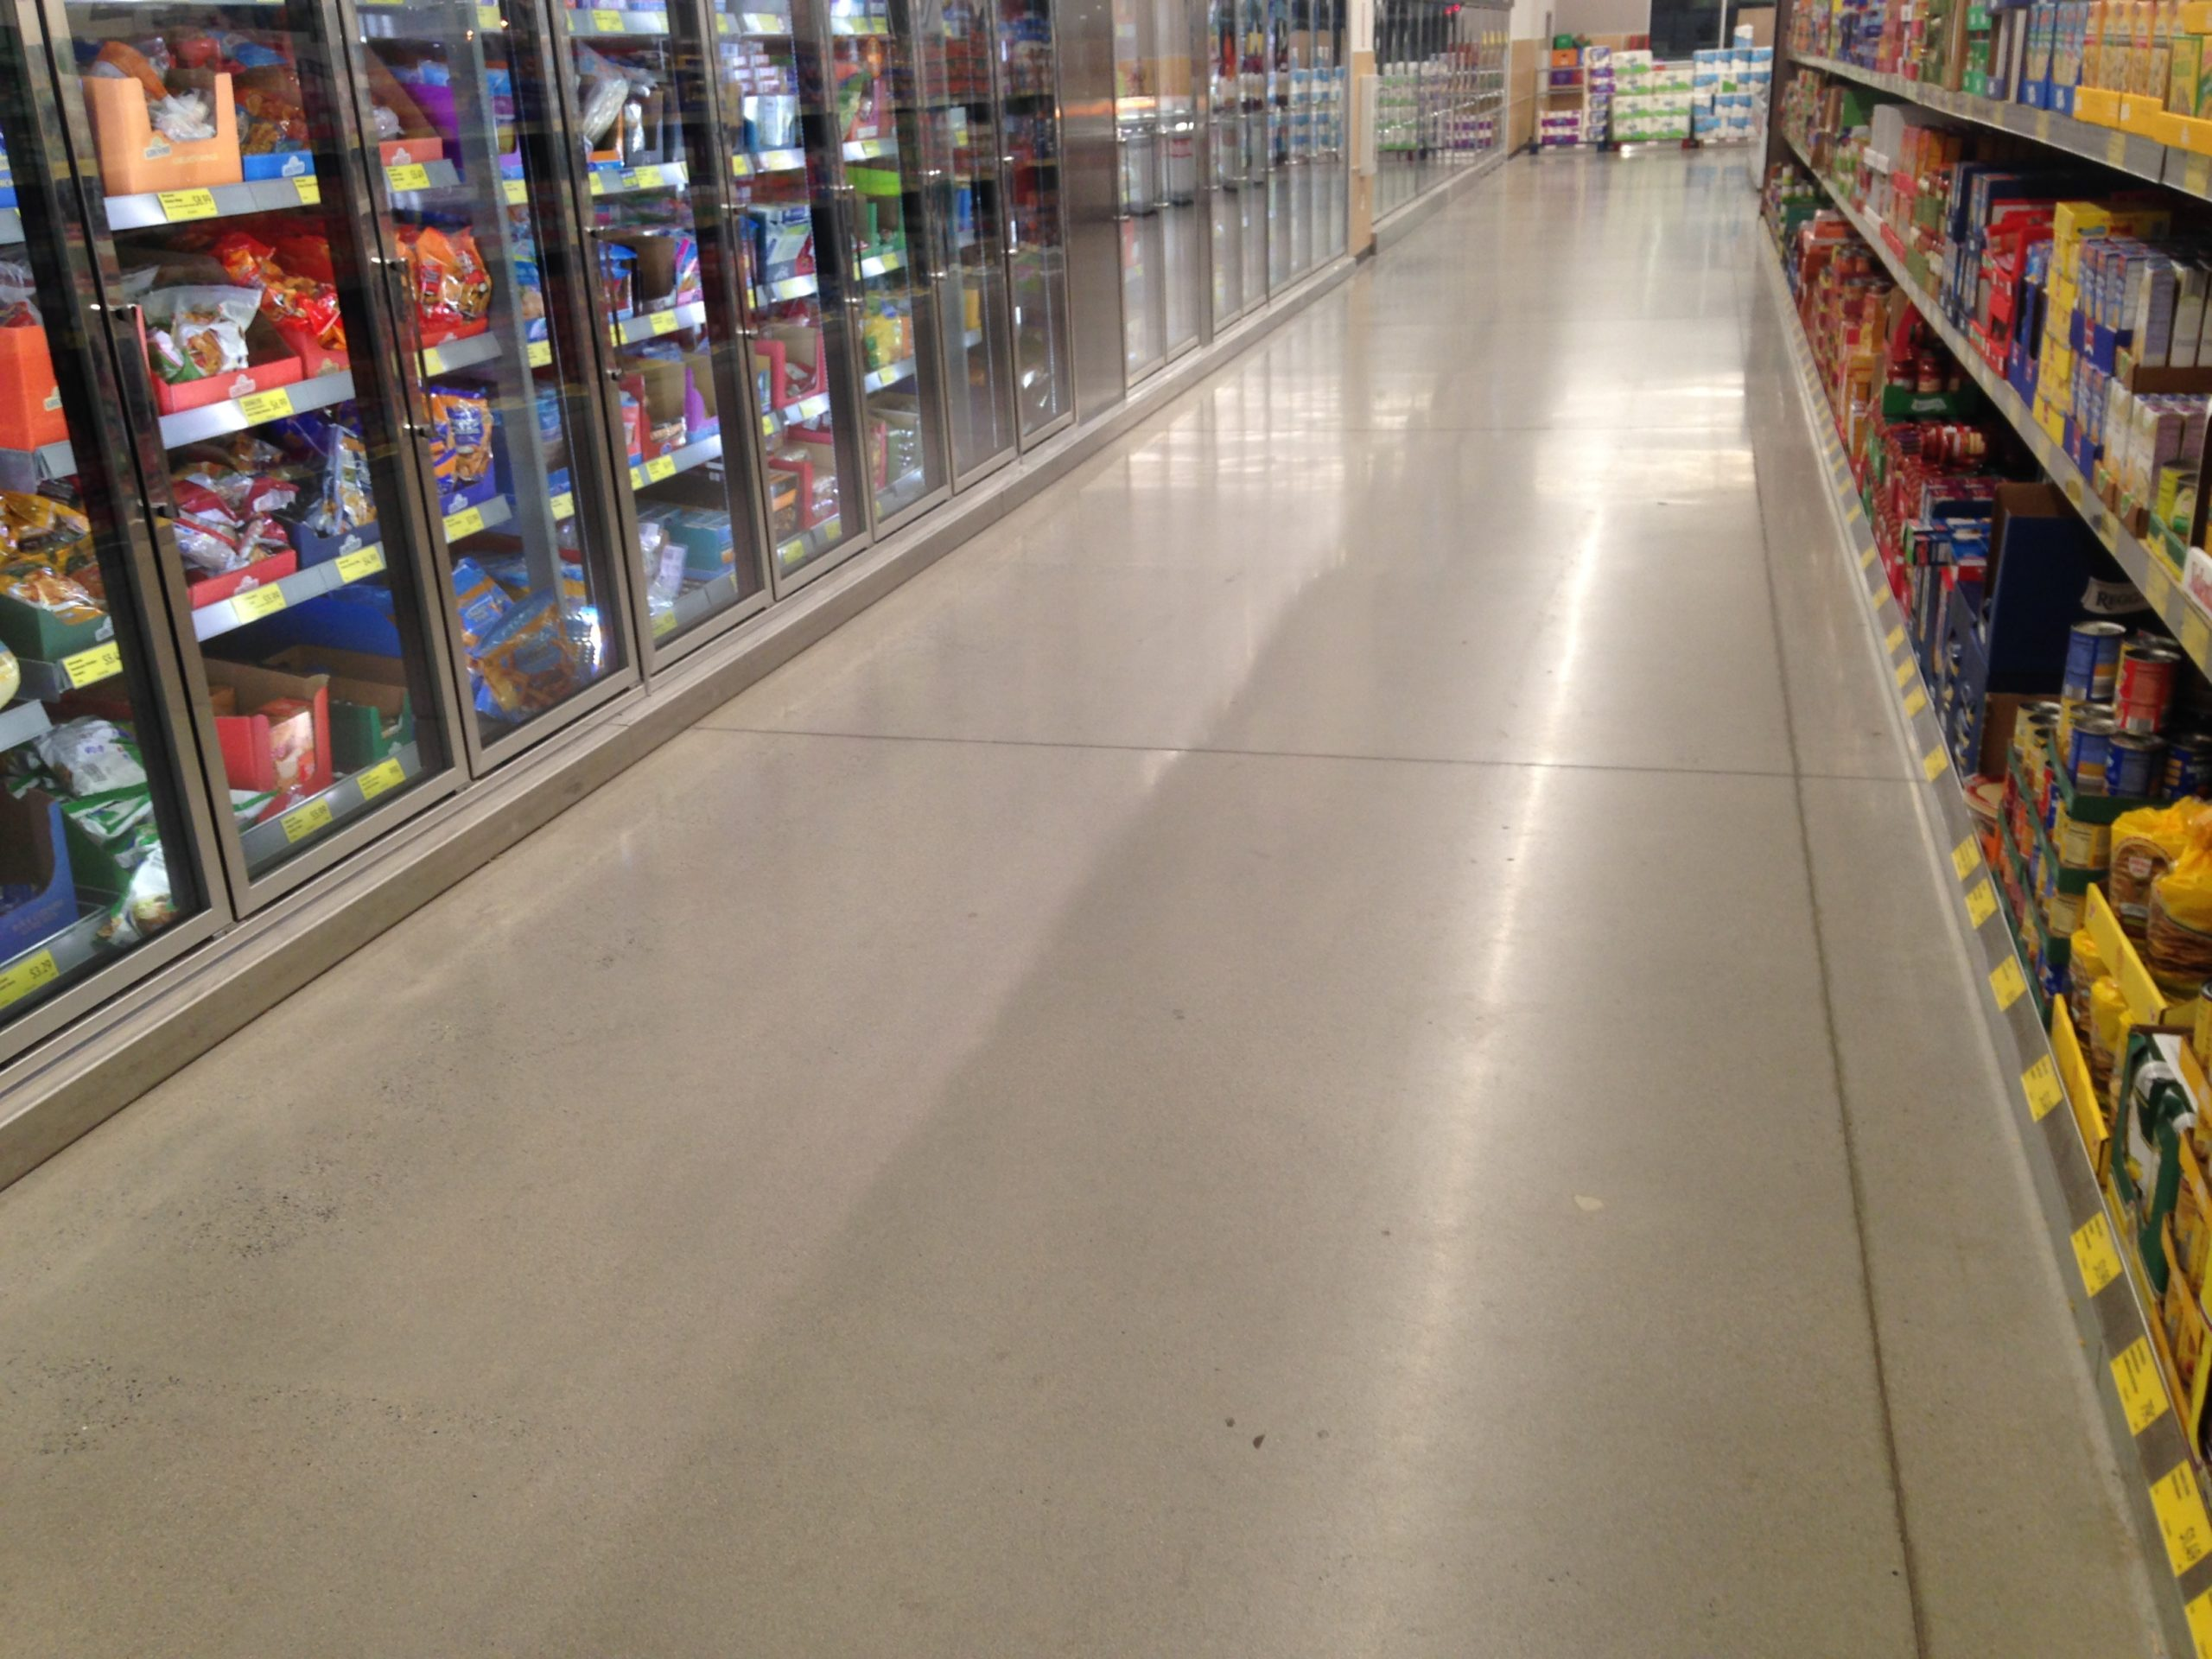 Epoxy flooring retail and grocery stores in CT